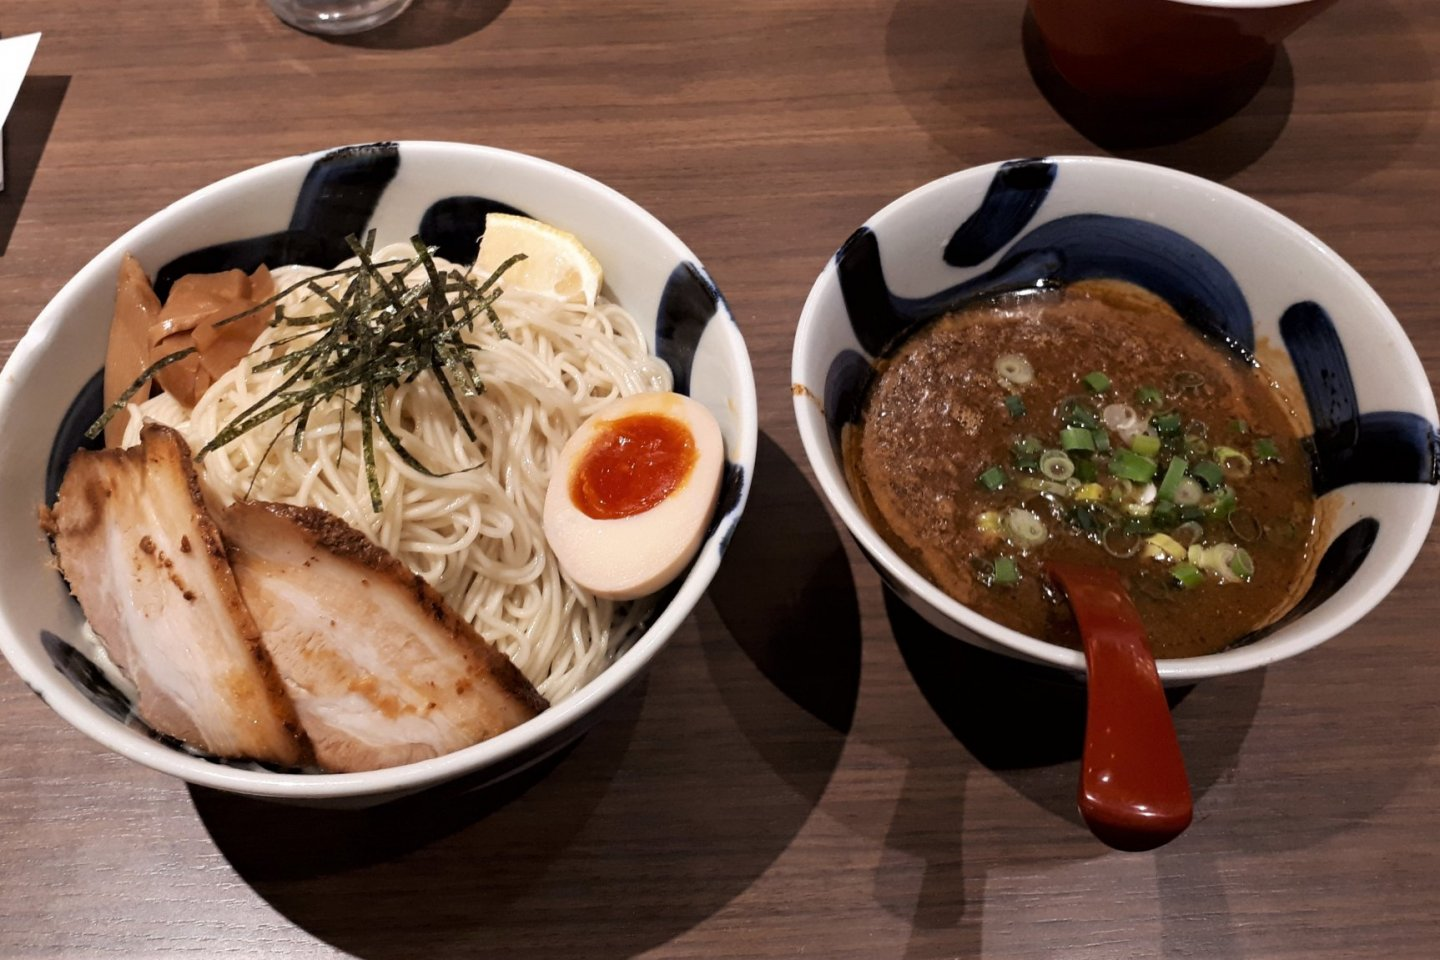 Tsukemen dipping ramen, one of my favourite ways to eat ramen